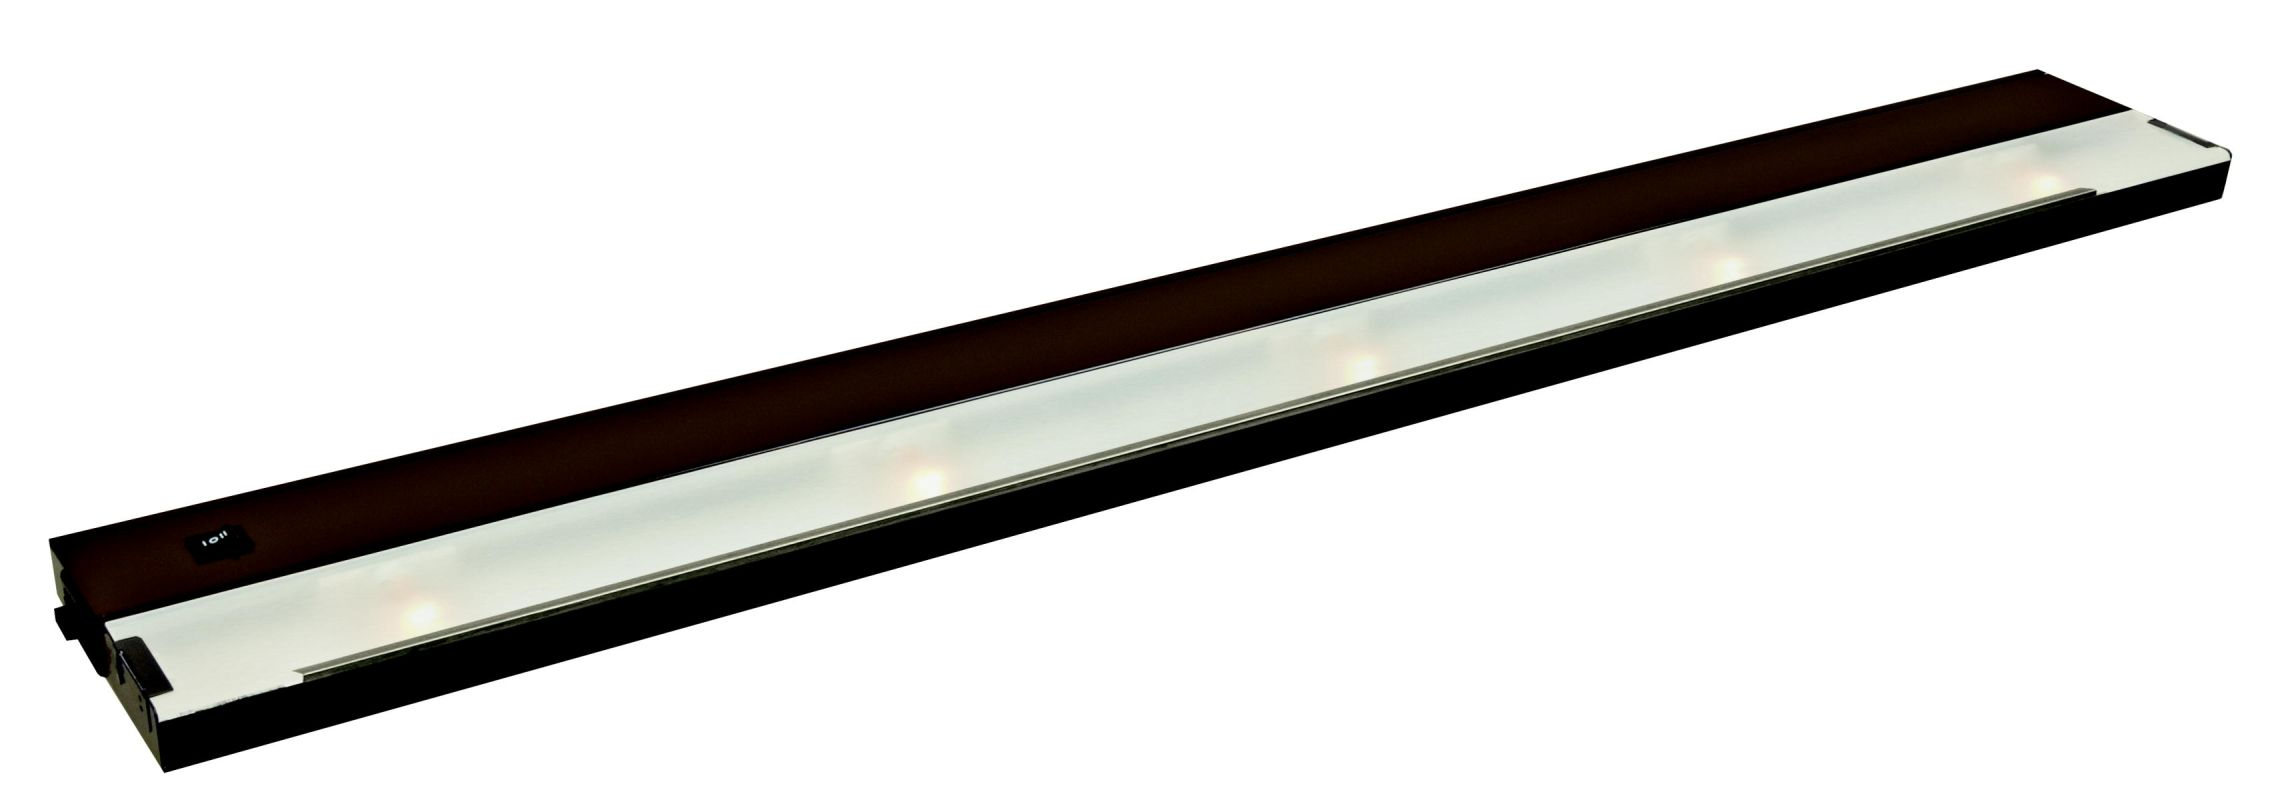 "Kichler 12215 TaskWork Modular 5 Light 40"" Under Cabinet Light - 120V"